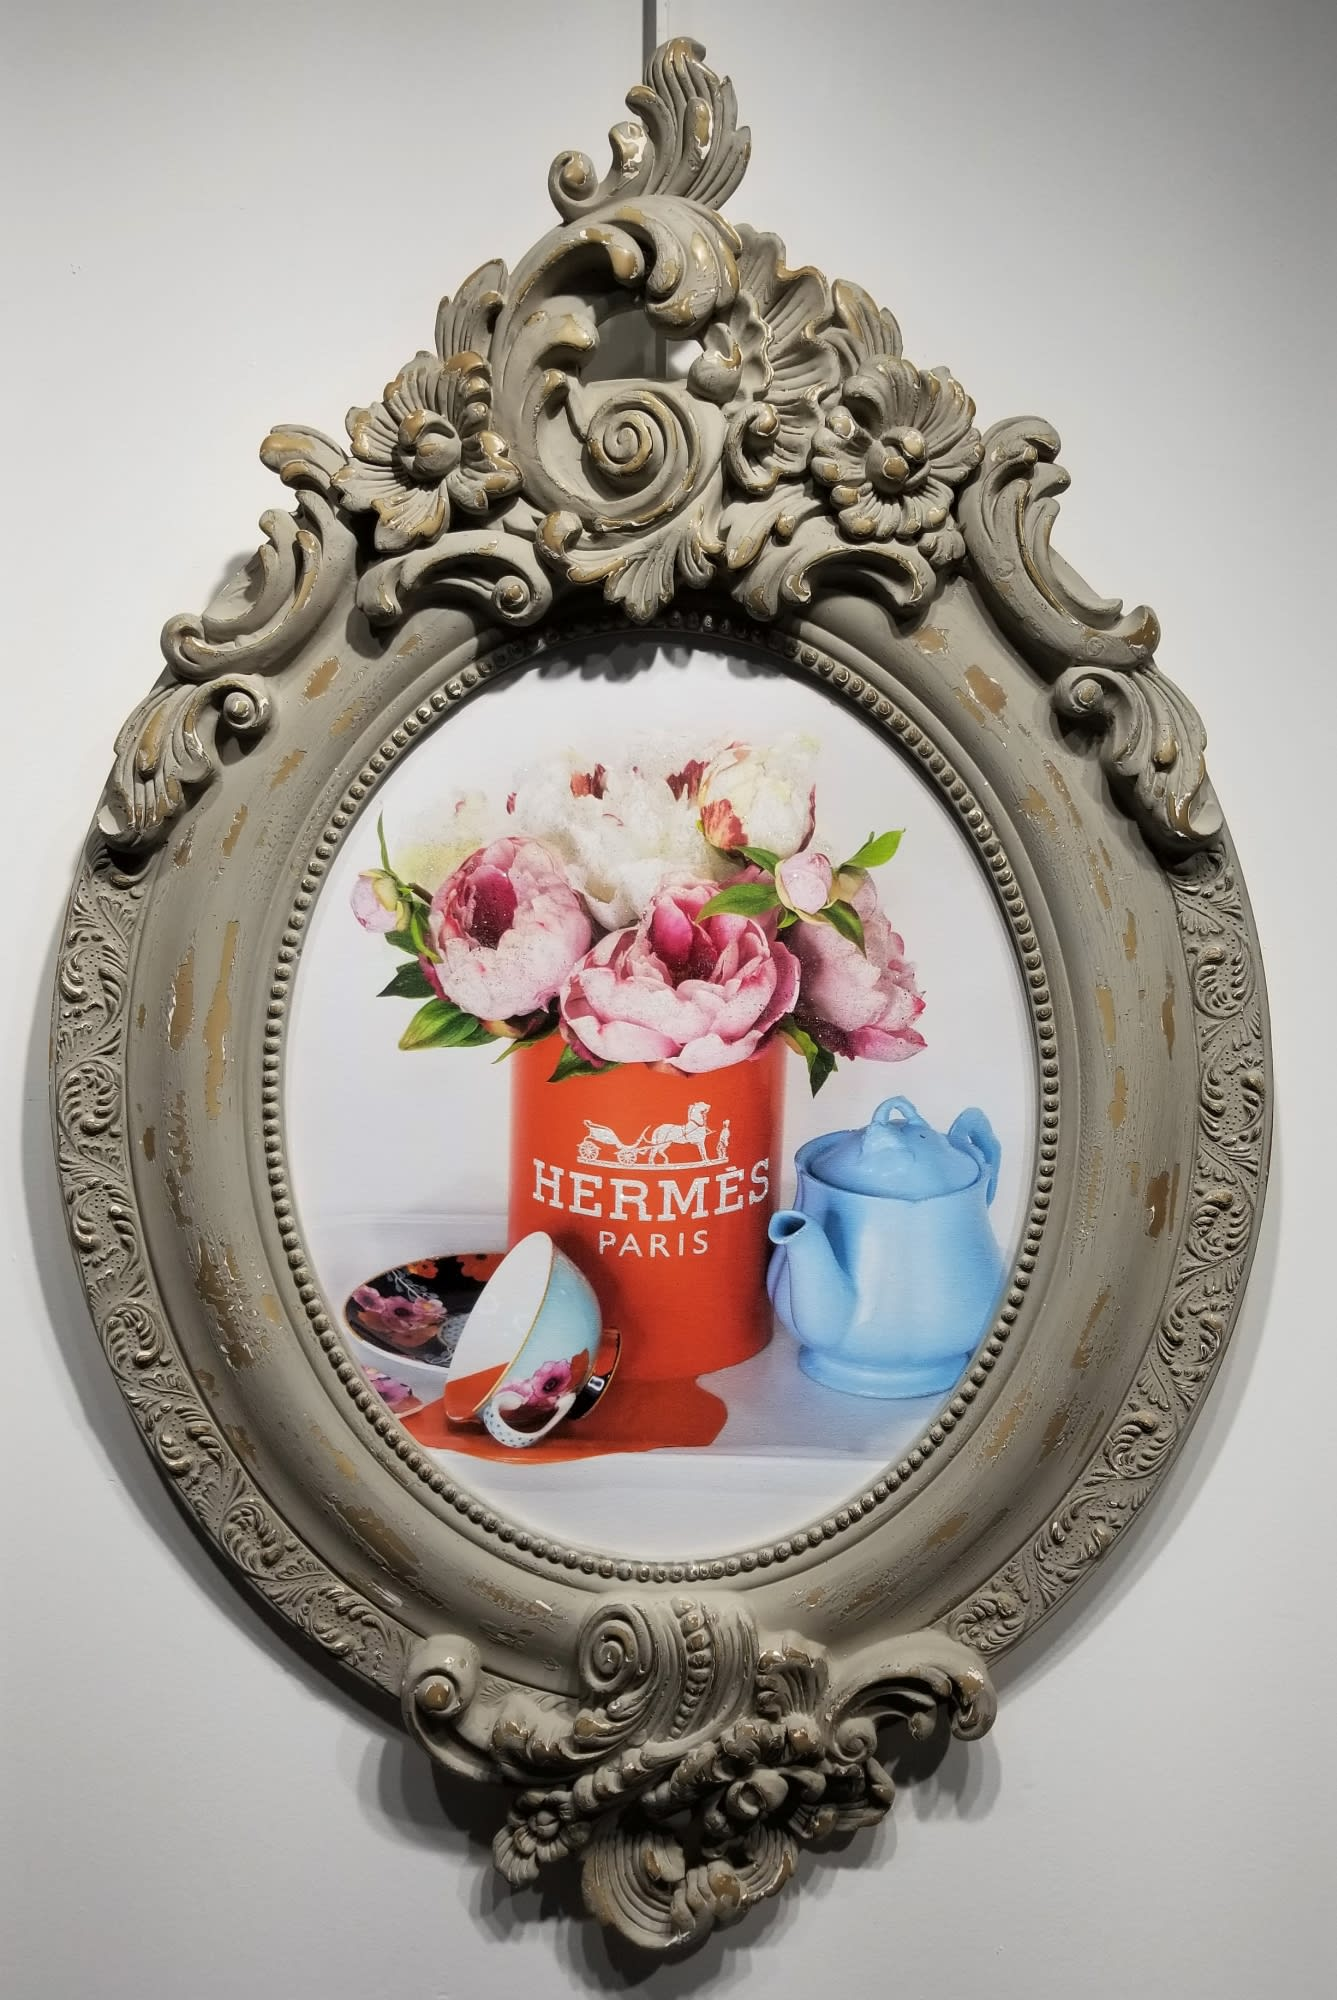 'Hermes Tea Party' by James Manderville at Gallery 133